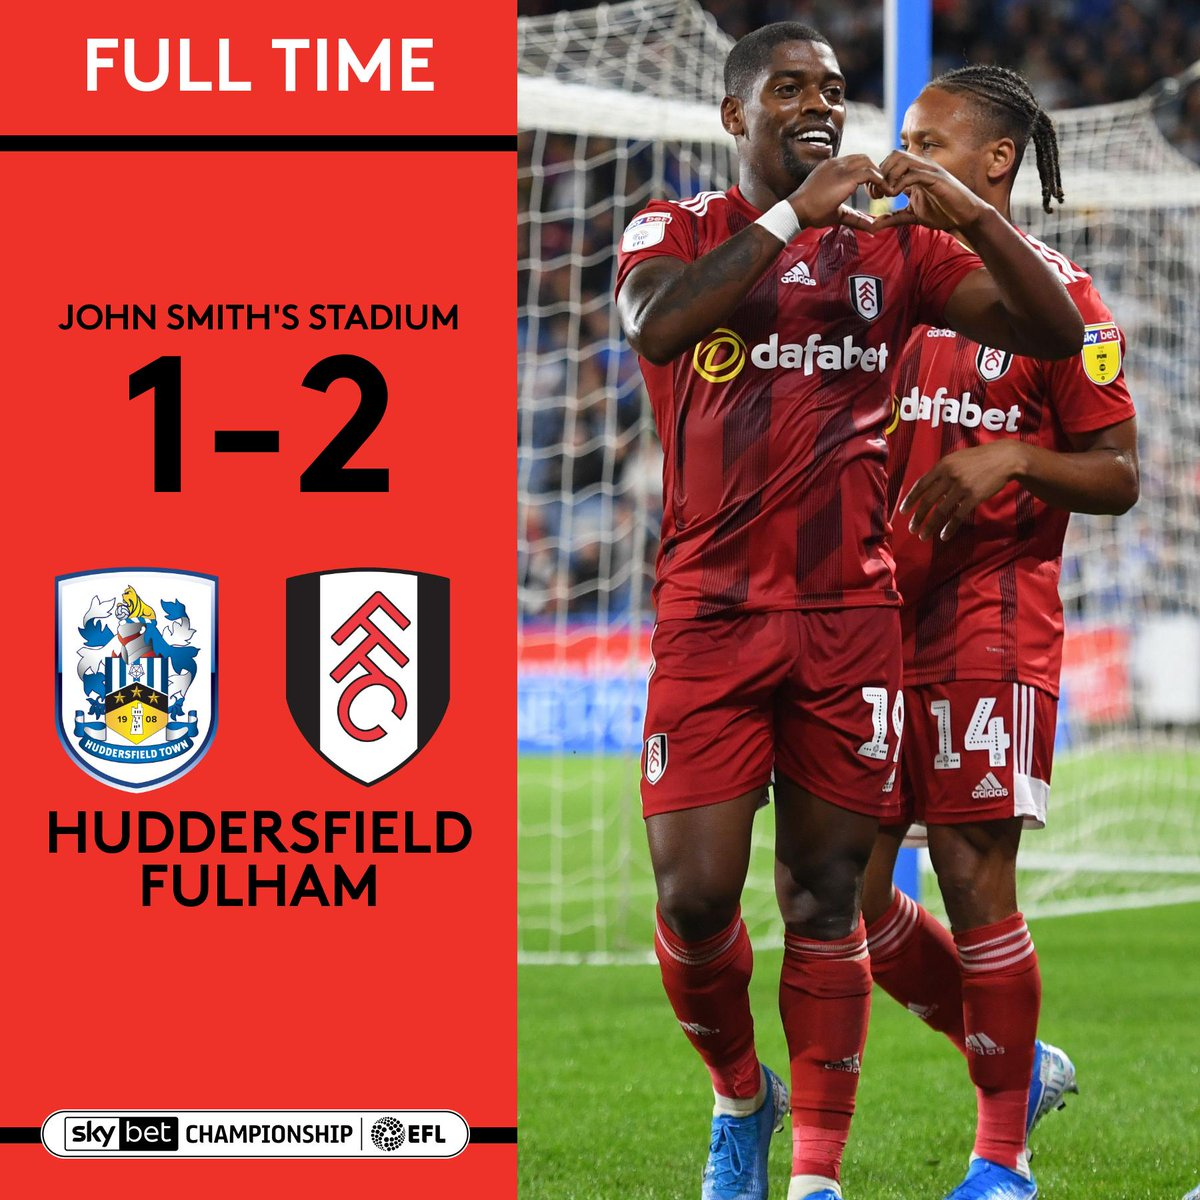 Replying to @FulhamFC: A @Ivancavaleiro17 special wins it for us!  Love Friday night football! ❤️  #HUDFUL